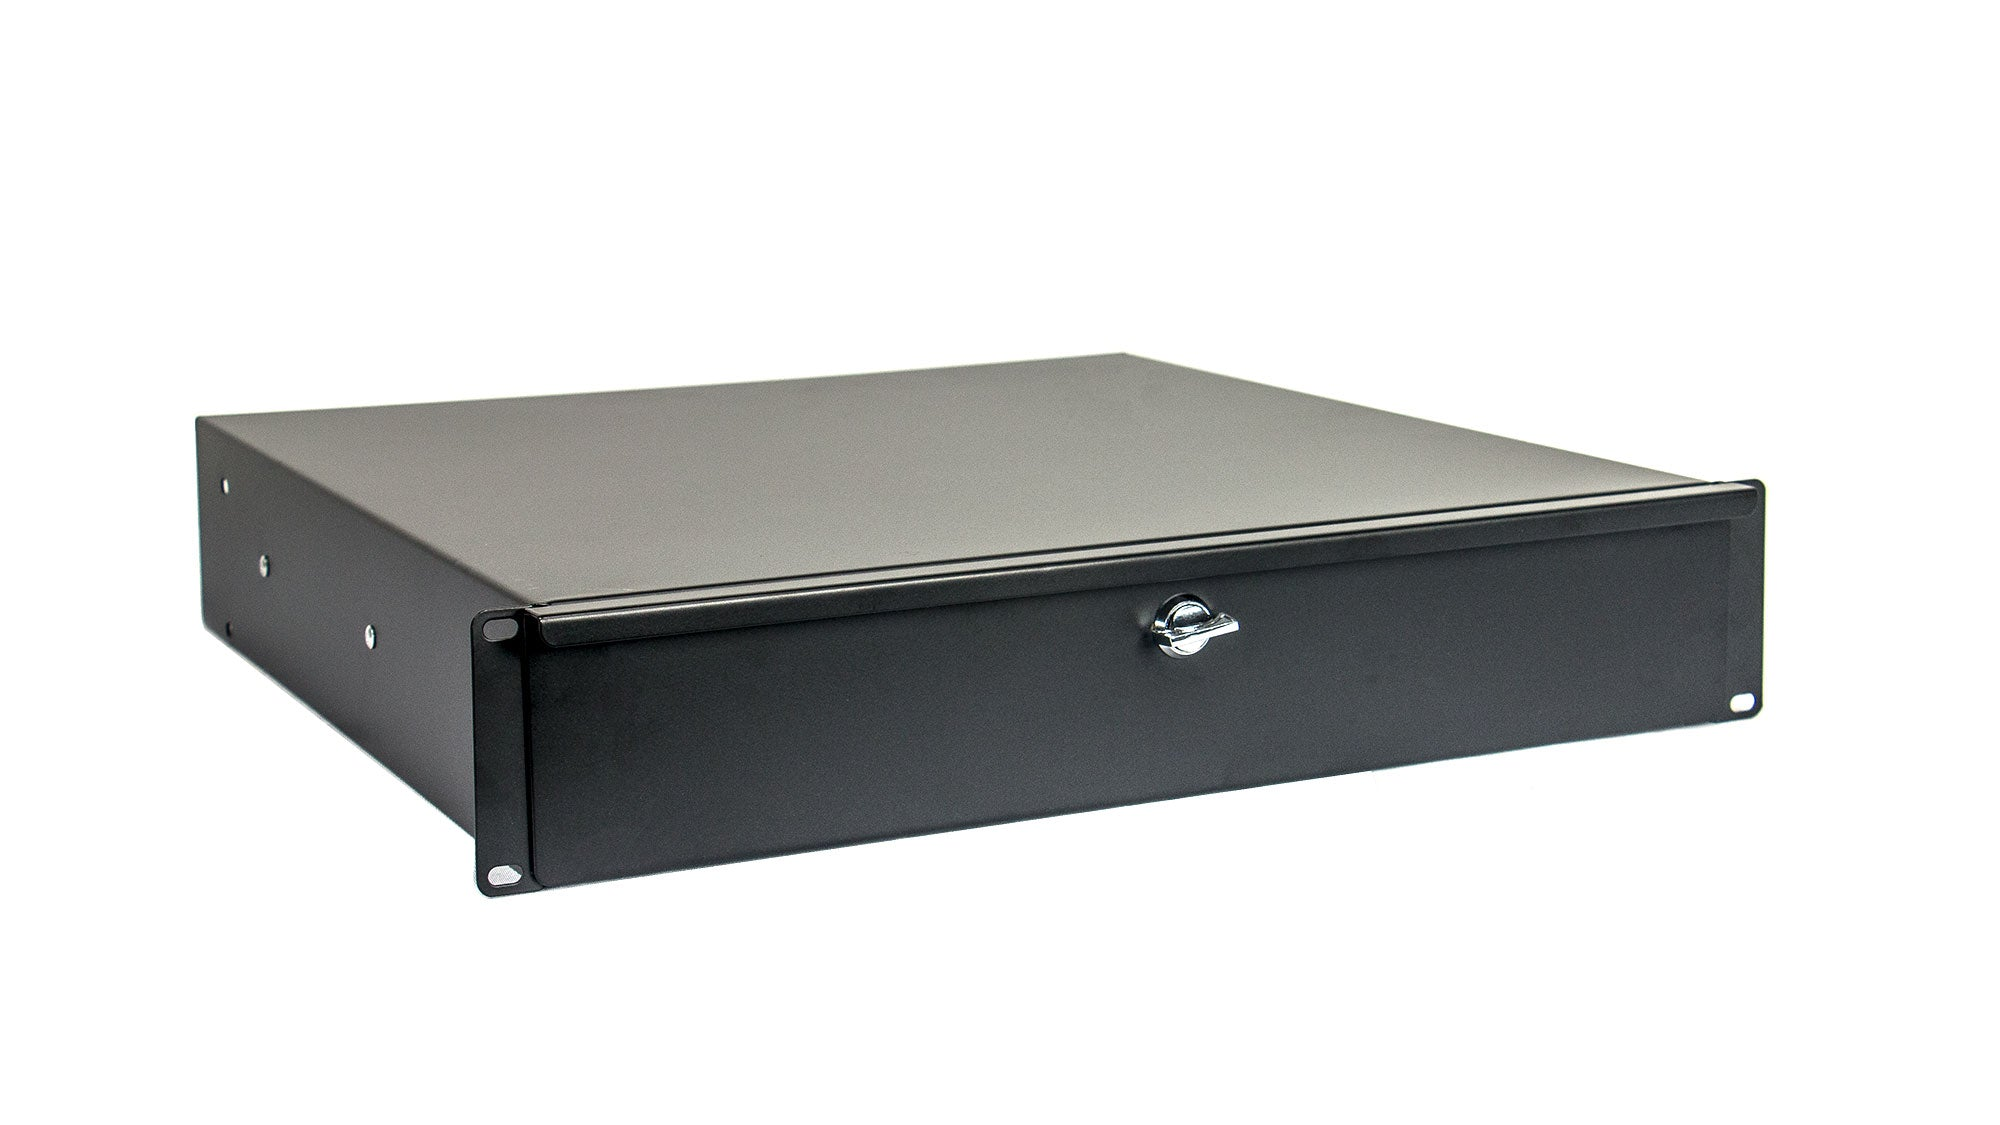 OSP HYC-2UD 2 Space Rack Drawer